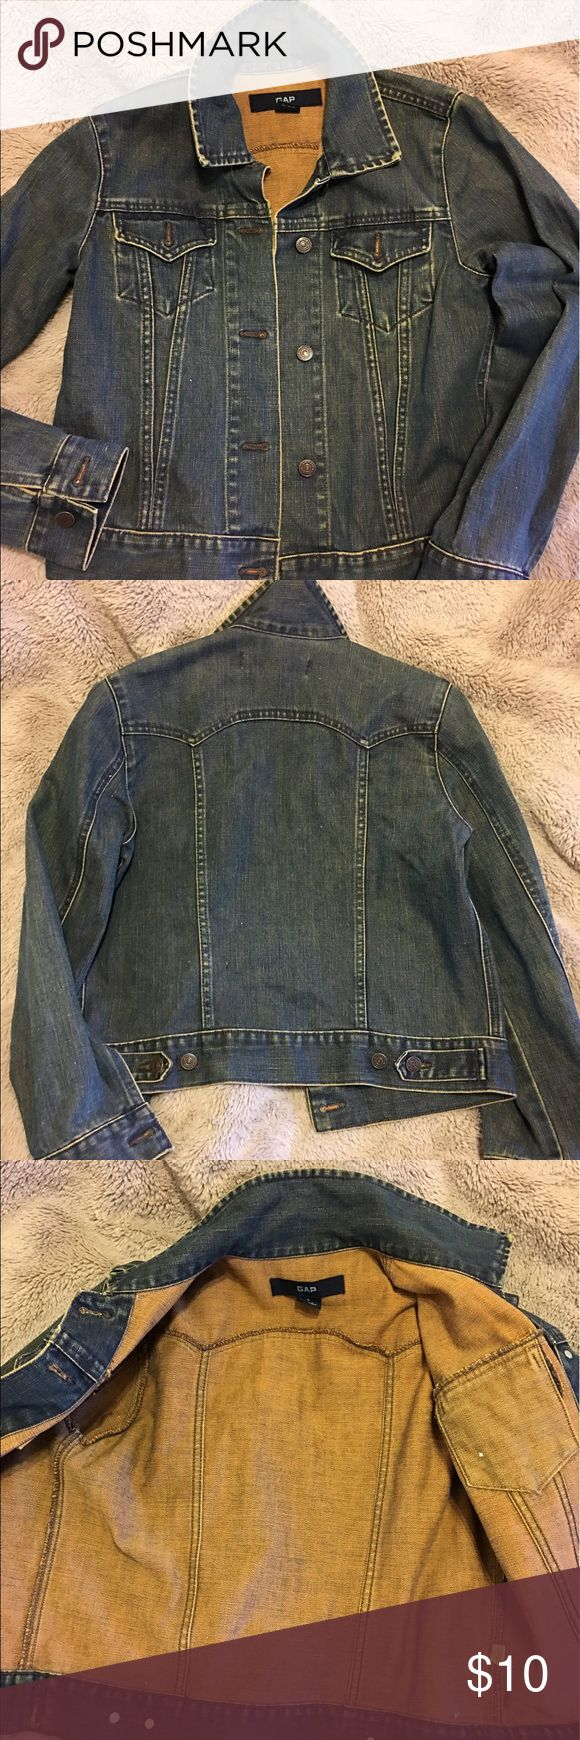 GAP Denim Jacket. Adorable GAP Denim Jacket. In dark denim wash. Button front closure with front pockets detail. Size Small. In great condition. Barely used. No missing buttons. No holes, no tears, no stains. Newly washed and ready to wear. Great versatile denim jacket. GAP Jackets & Coats Jean Jackets